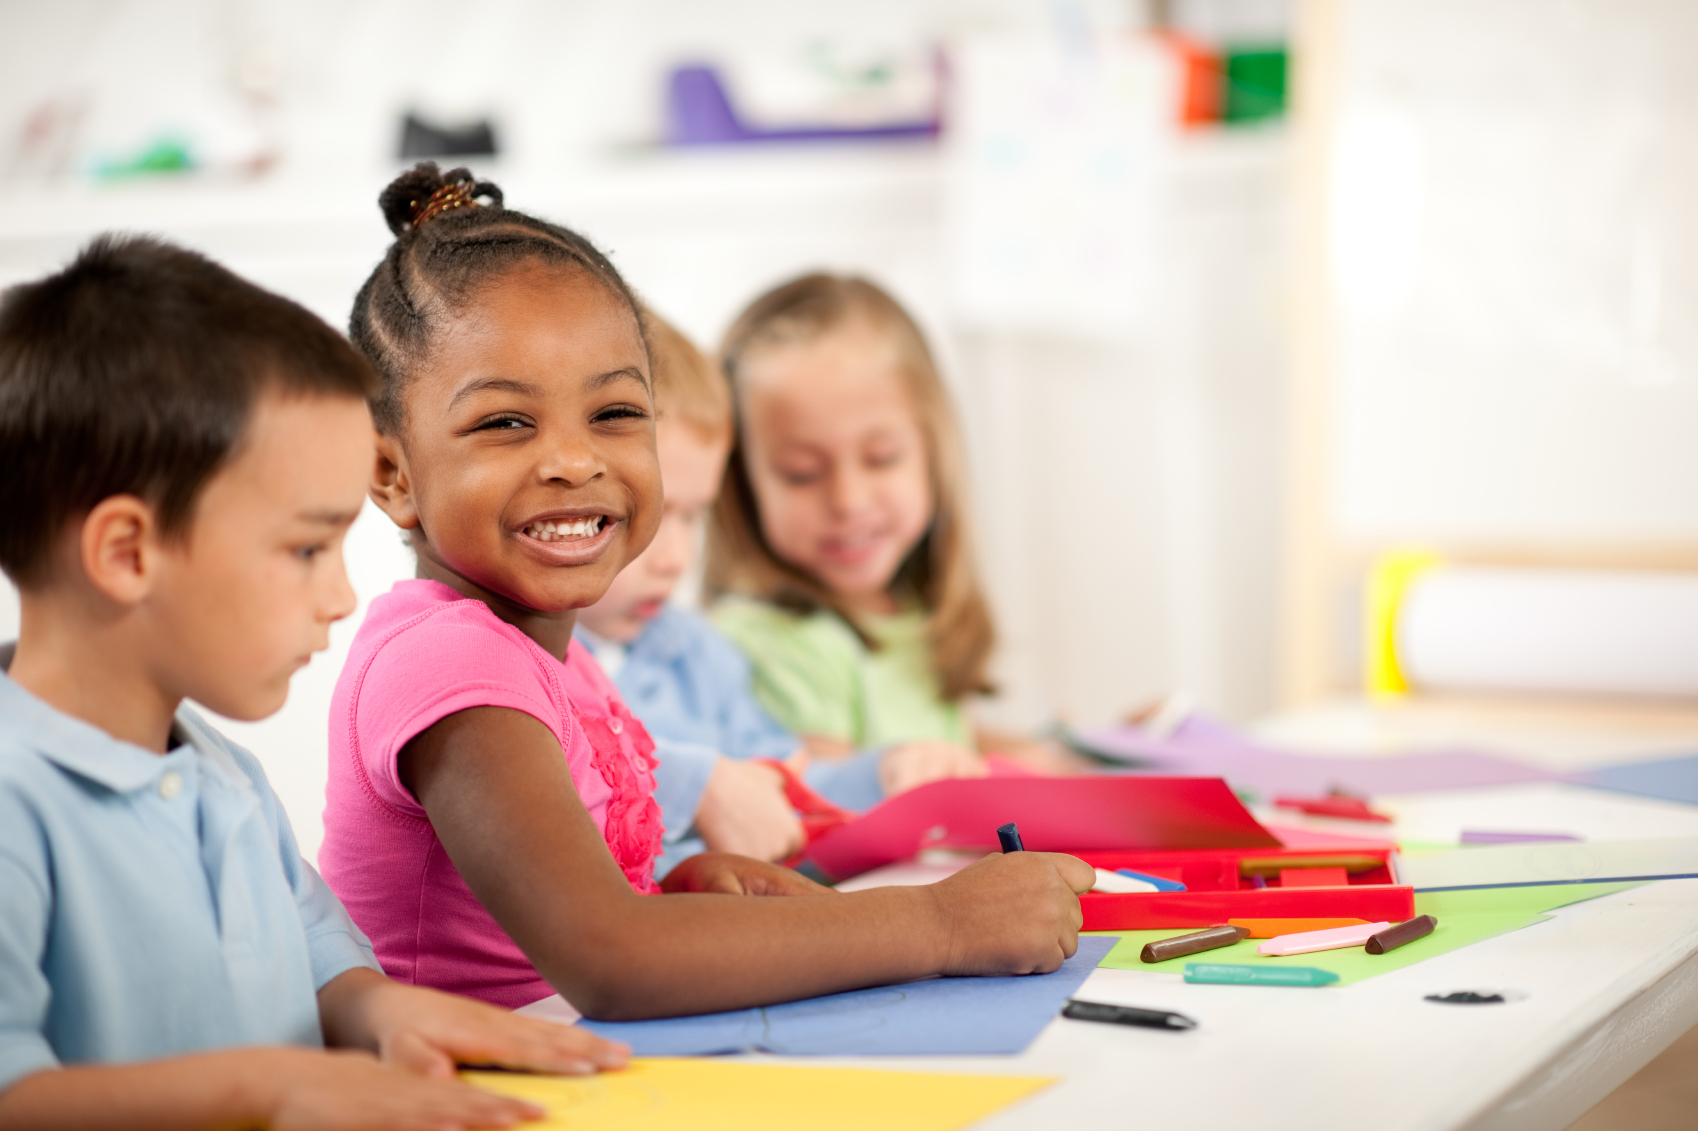 8 Kindergarten Readiness Skills that are More Important than Letter Recognition and Counting